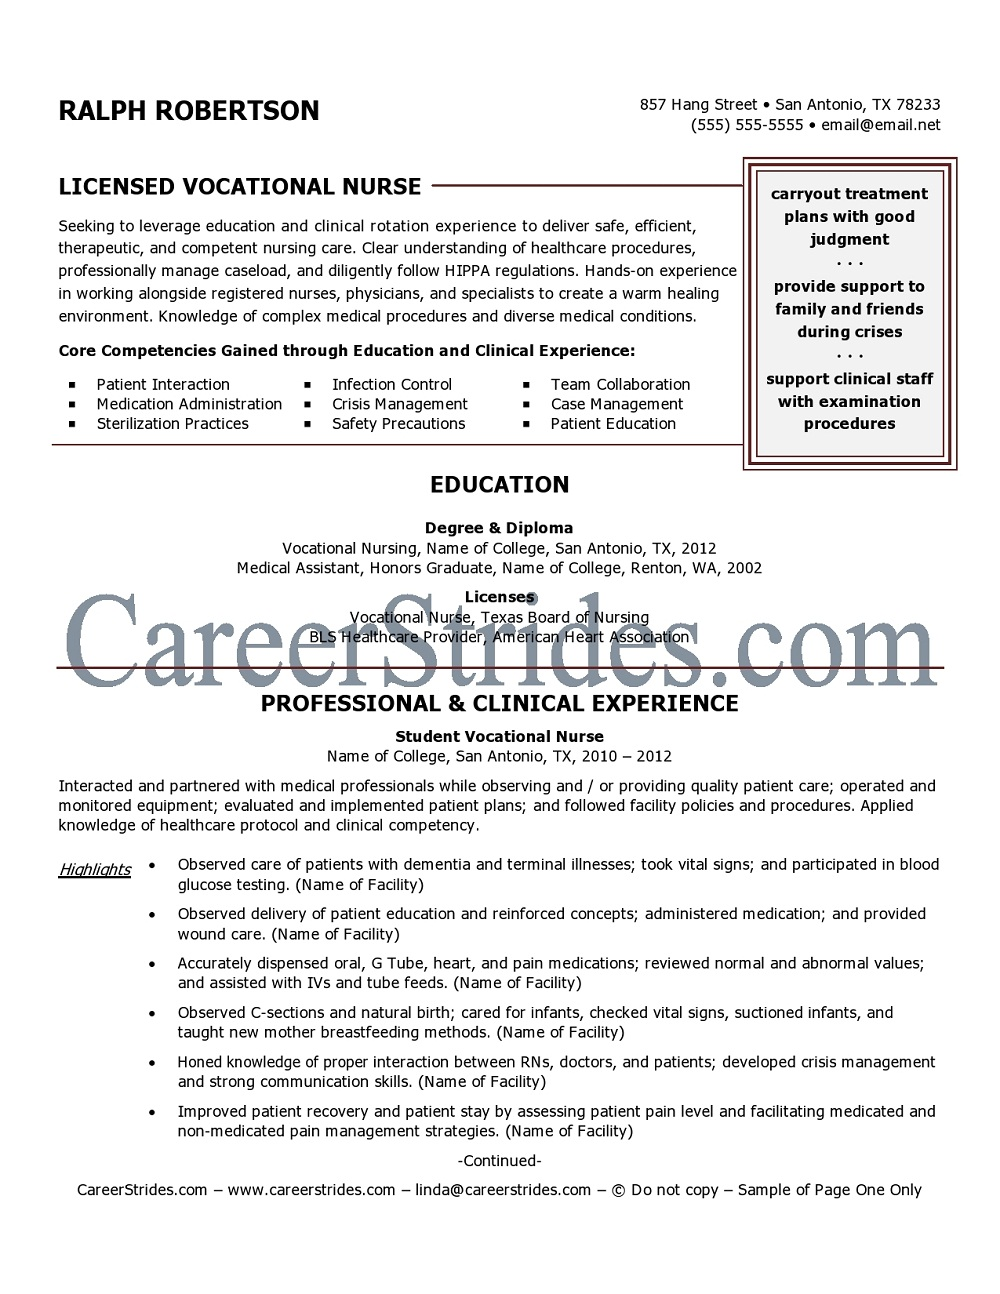 sample licensed vocational nurse resume resume builder sample licensed vocational nurse resume lpn licensed practical nurse resume samples vocational nurse flight nurse objective